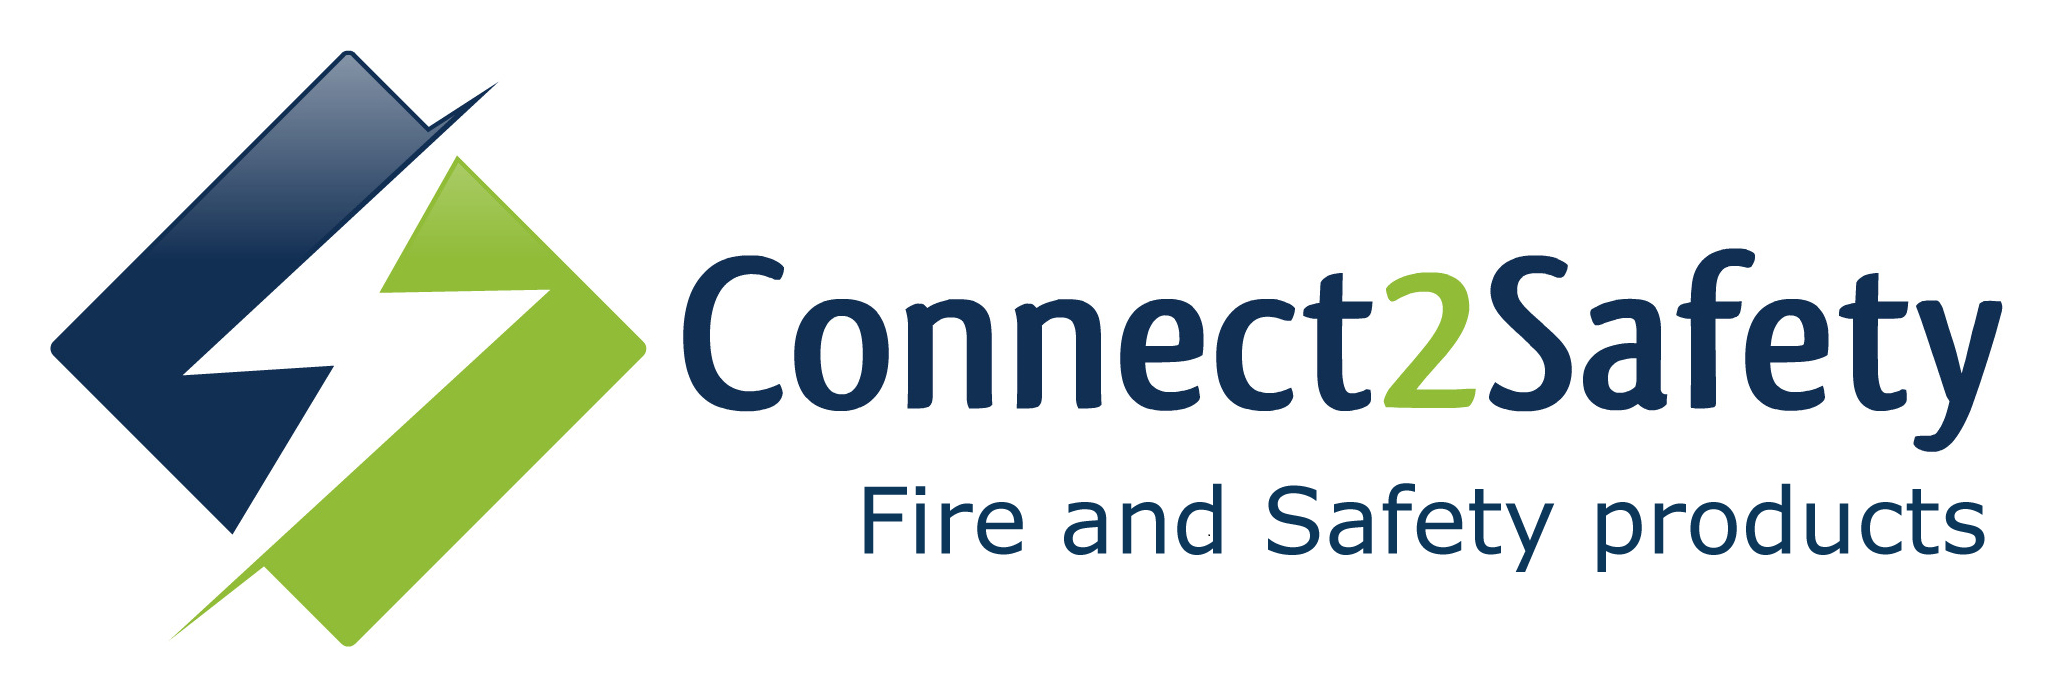 Logo-Connect2Safety-FireSafetyProducts.png